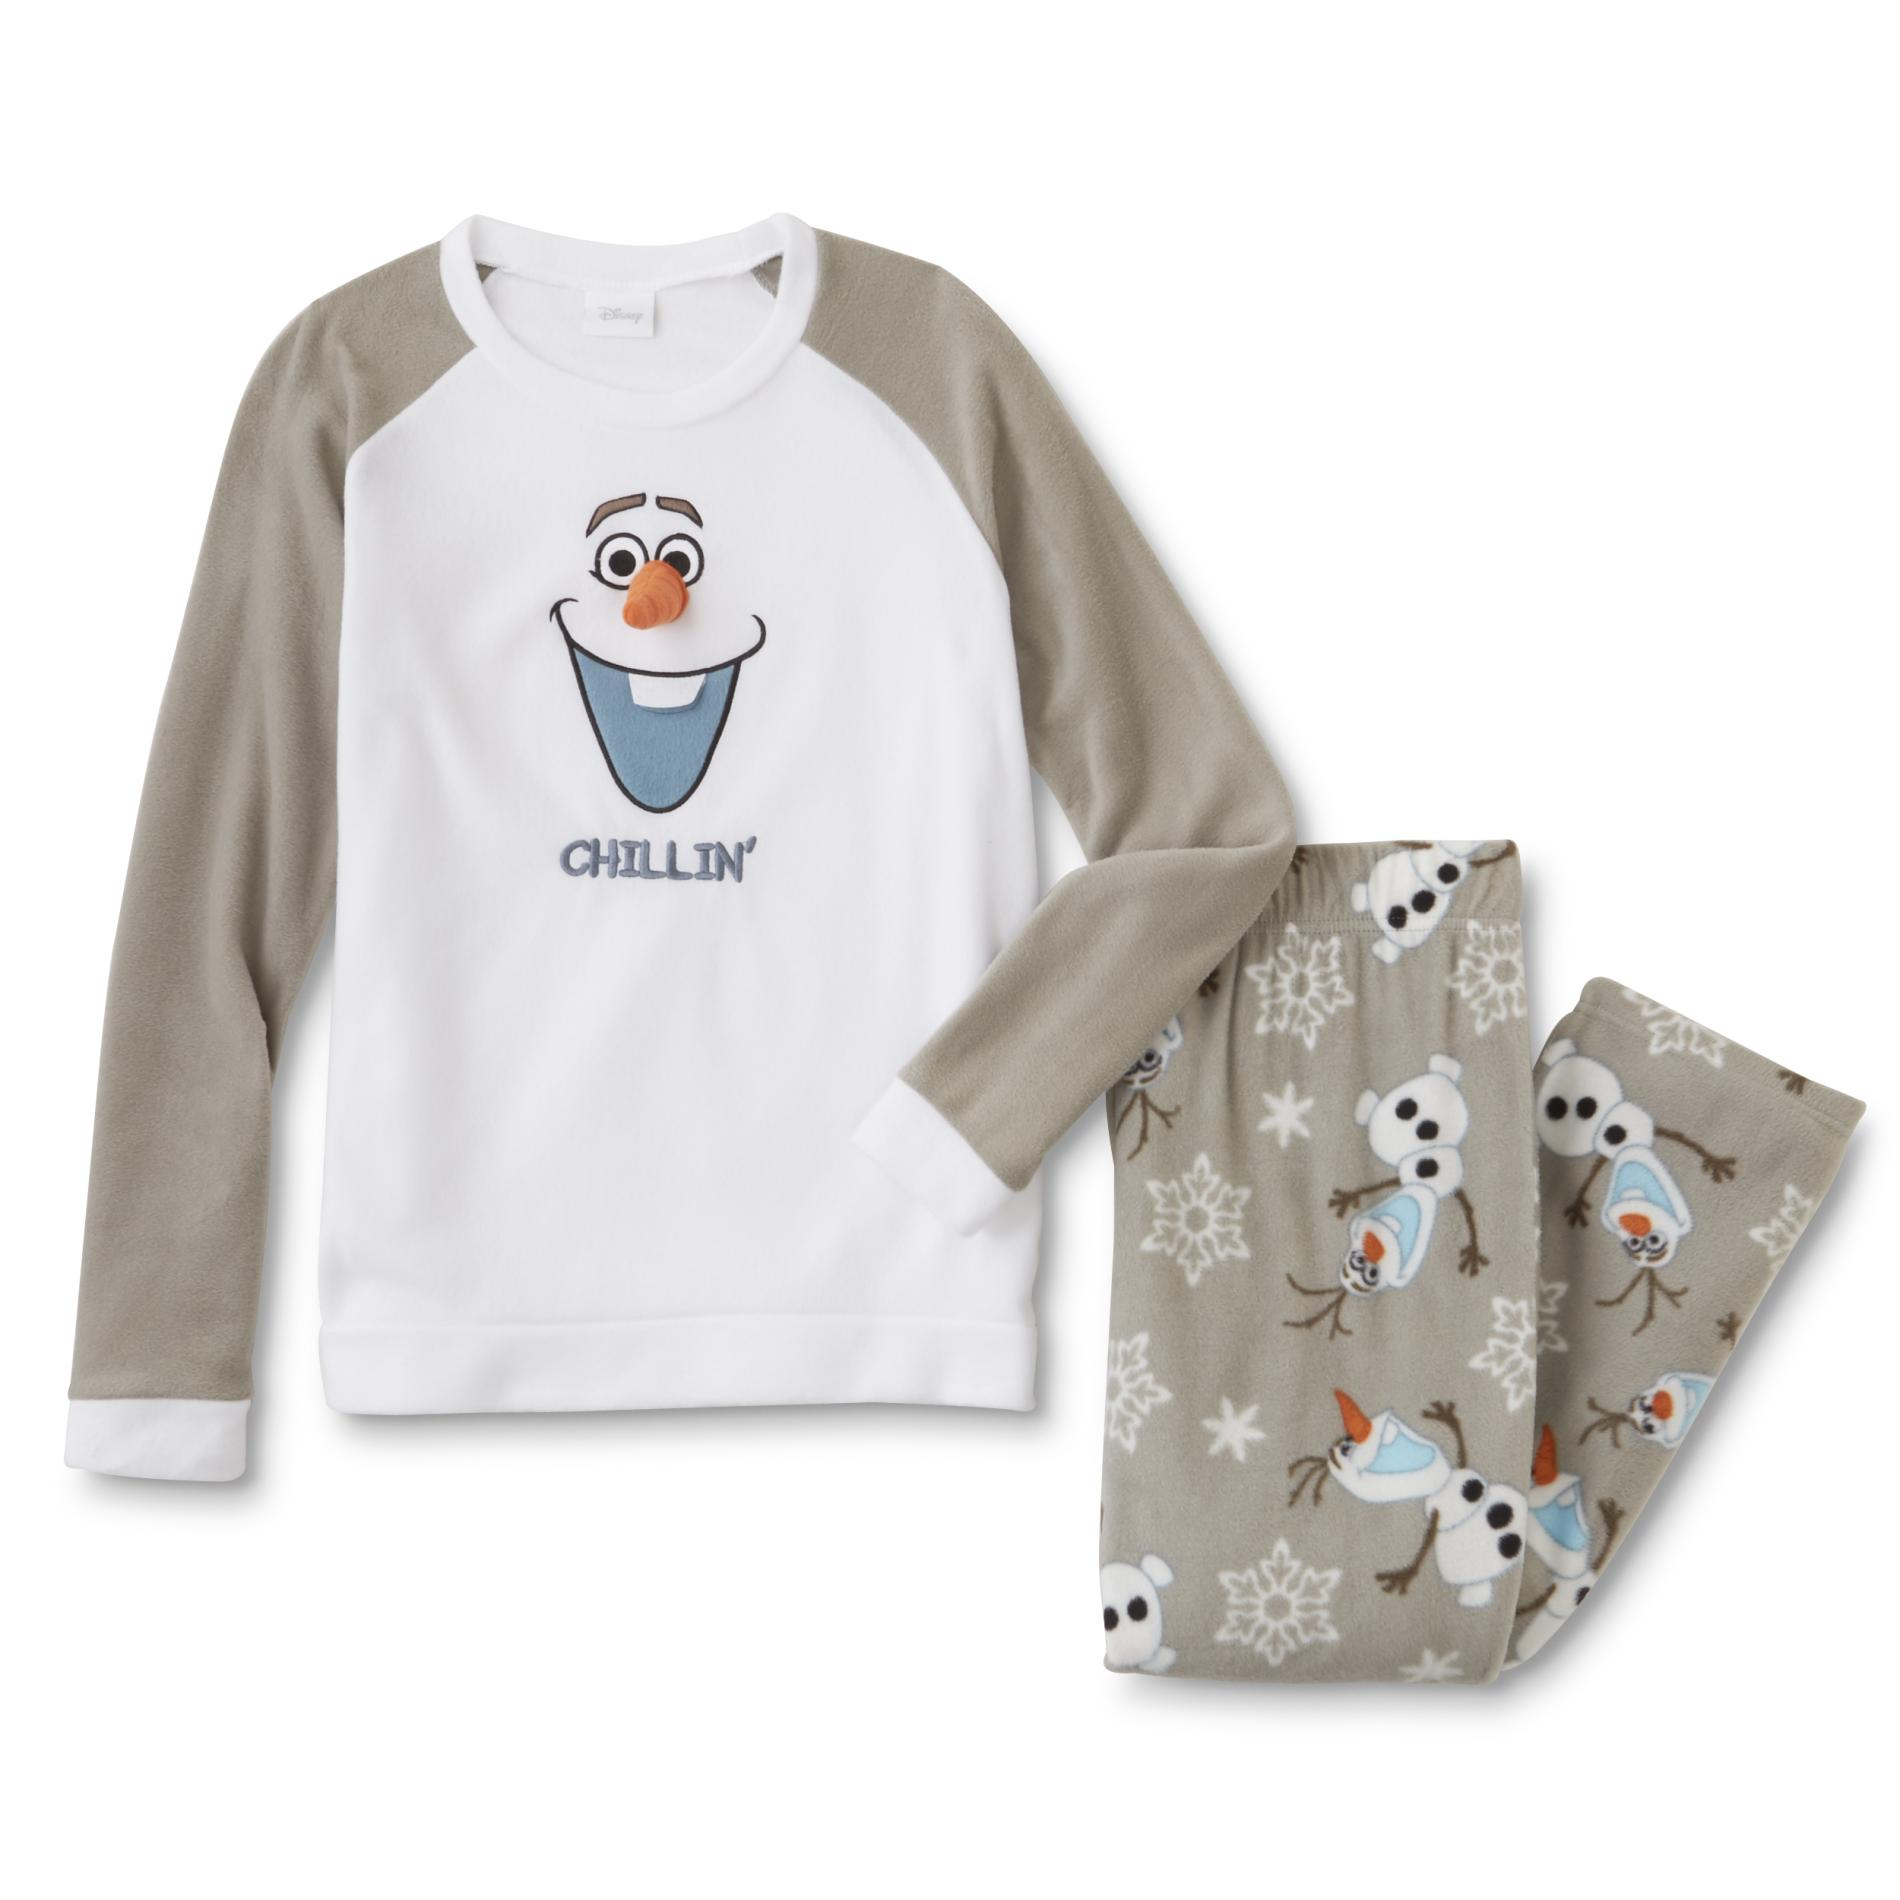 Disney Frozen Juniors' Fleece Pajama Top & Pants - Olaf PartNumber: A010487473 MfgPartNumber: WF17208SS